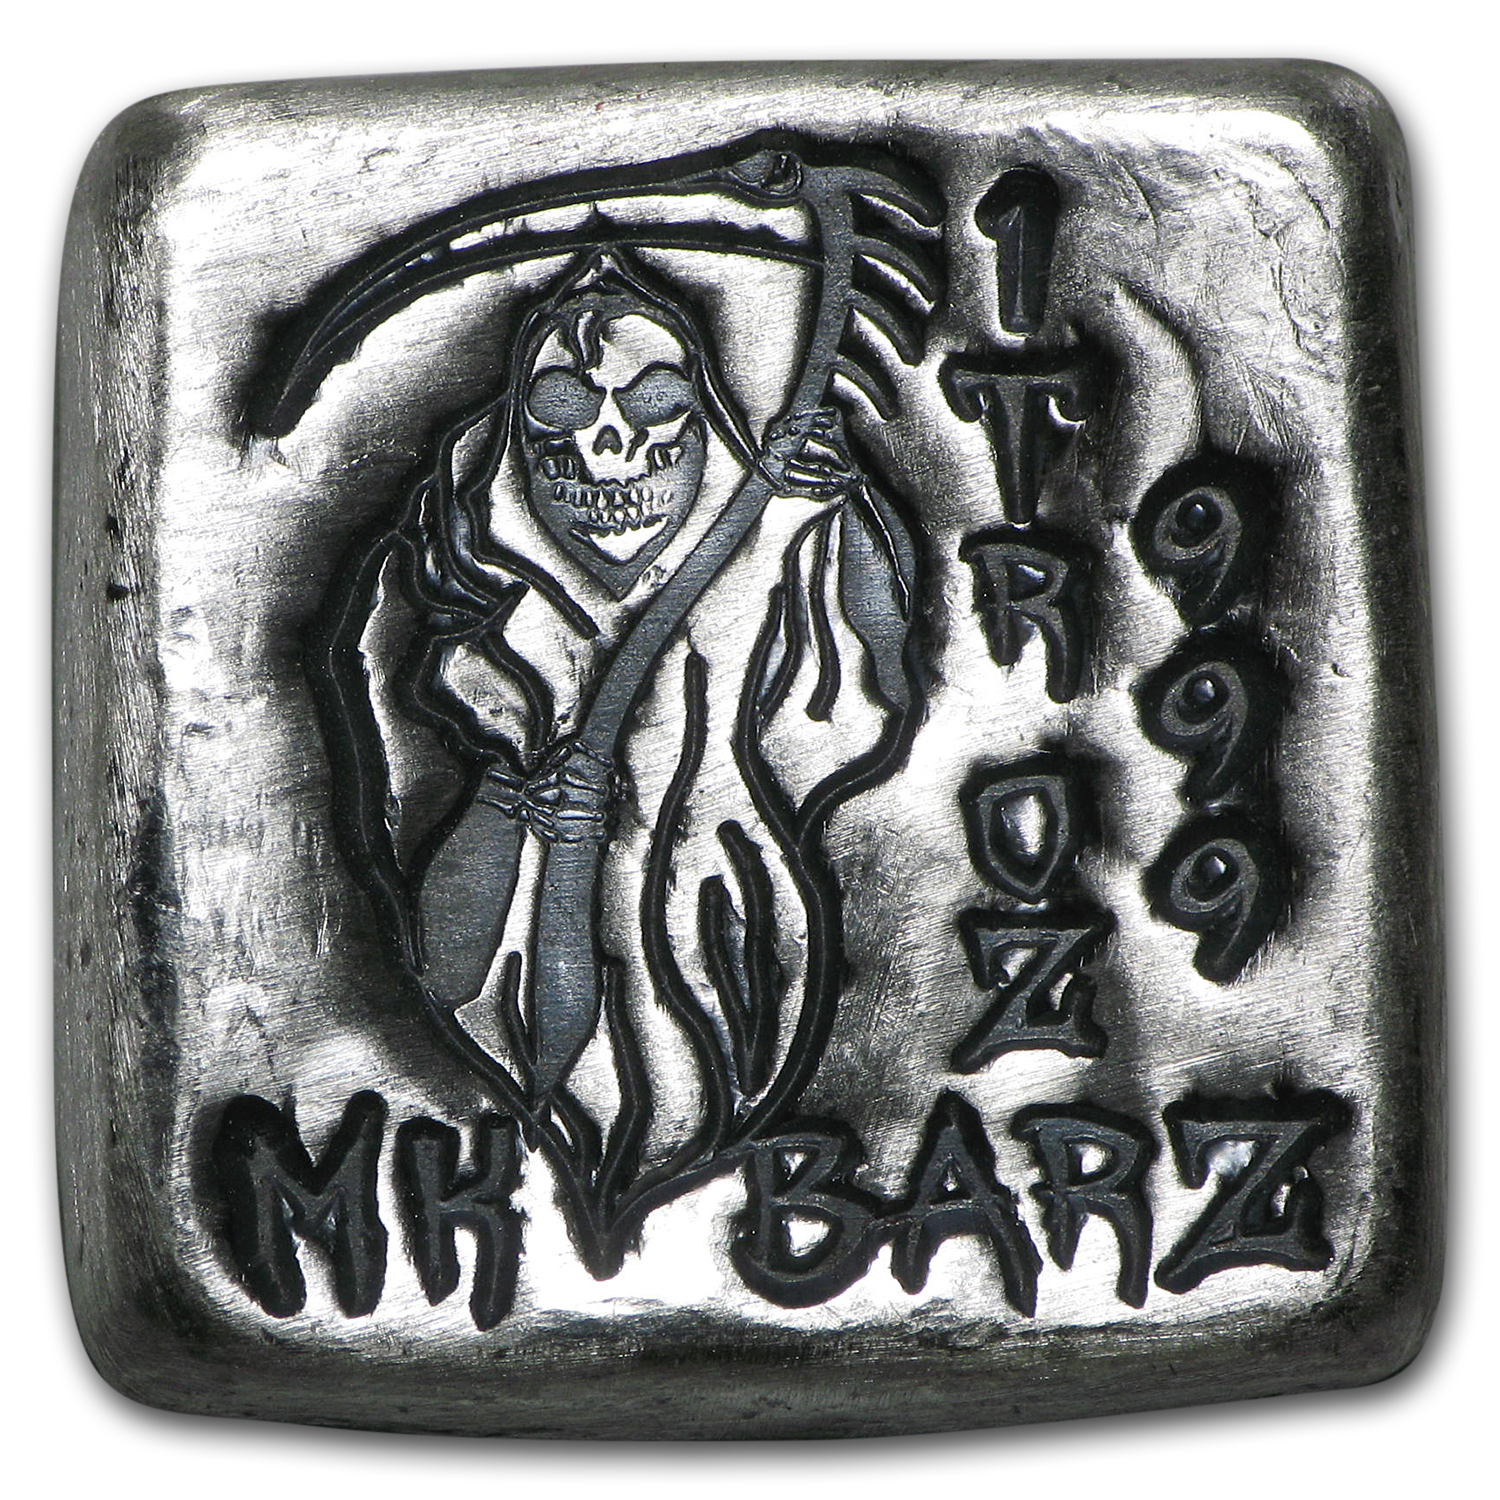 1 oz Silver Square - MK Barz (Grim Reaper, Death is Coming)